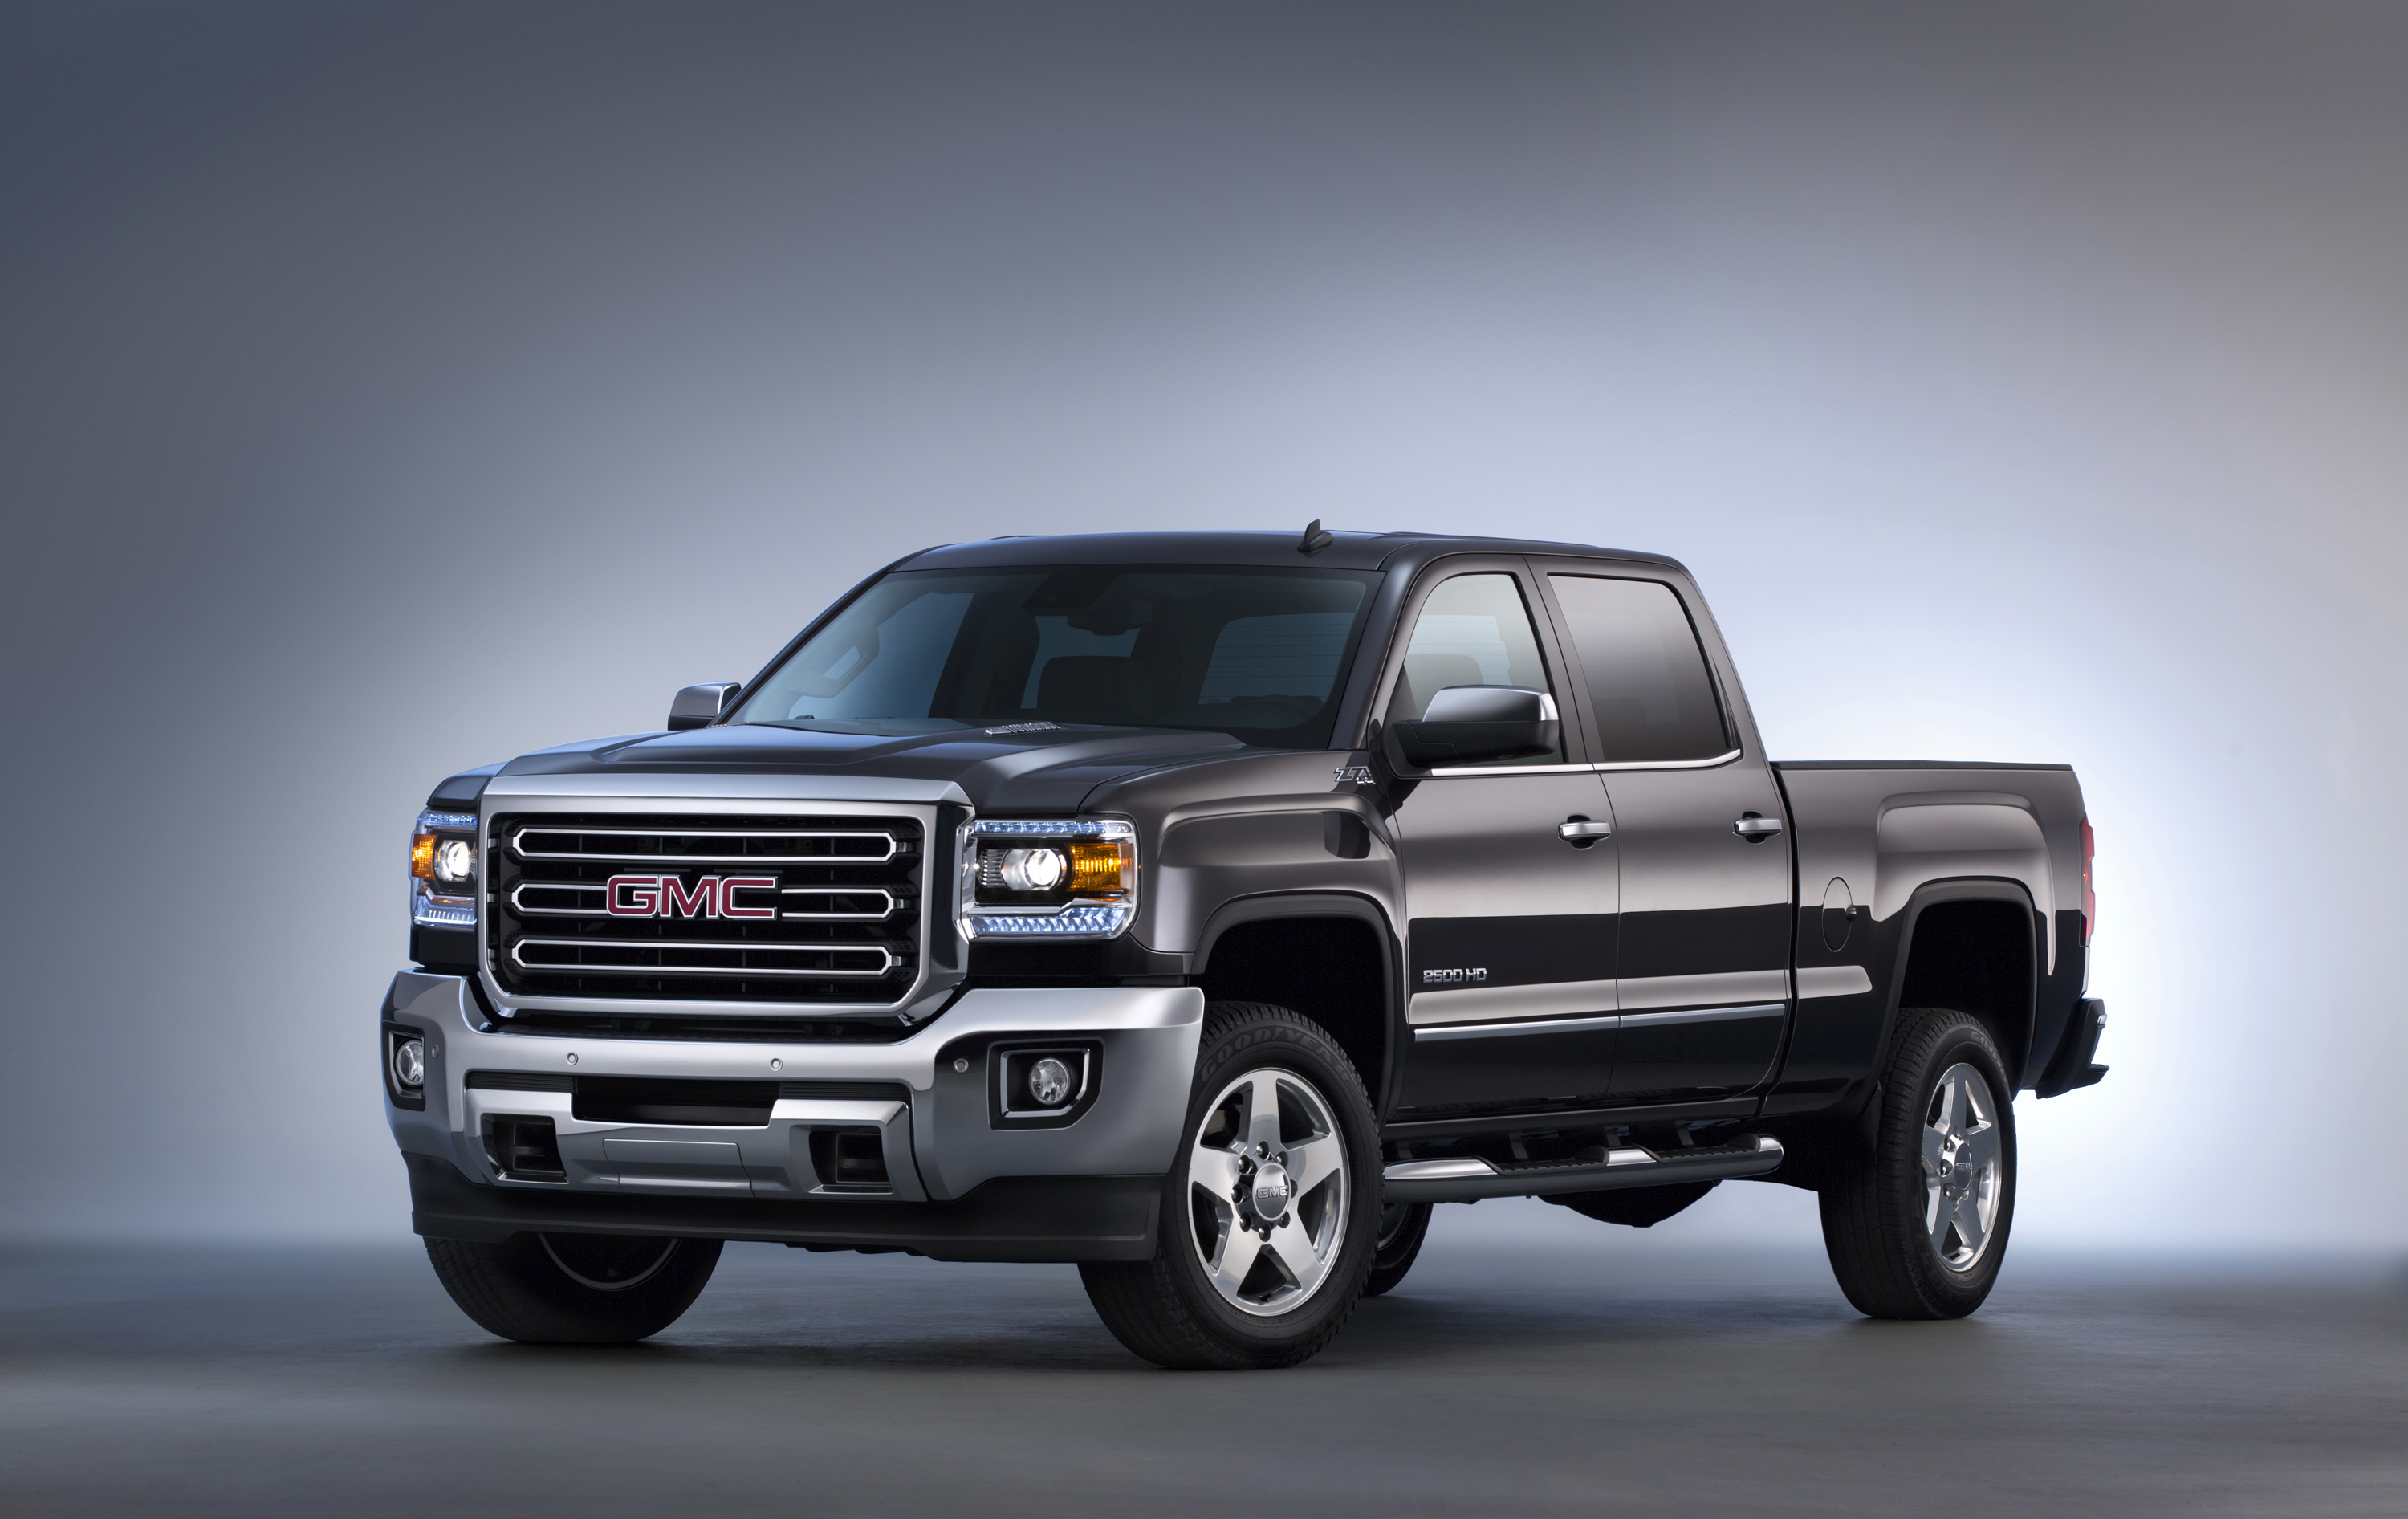 en vehicles front threequarter us states media united pressroom location gmc sierra